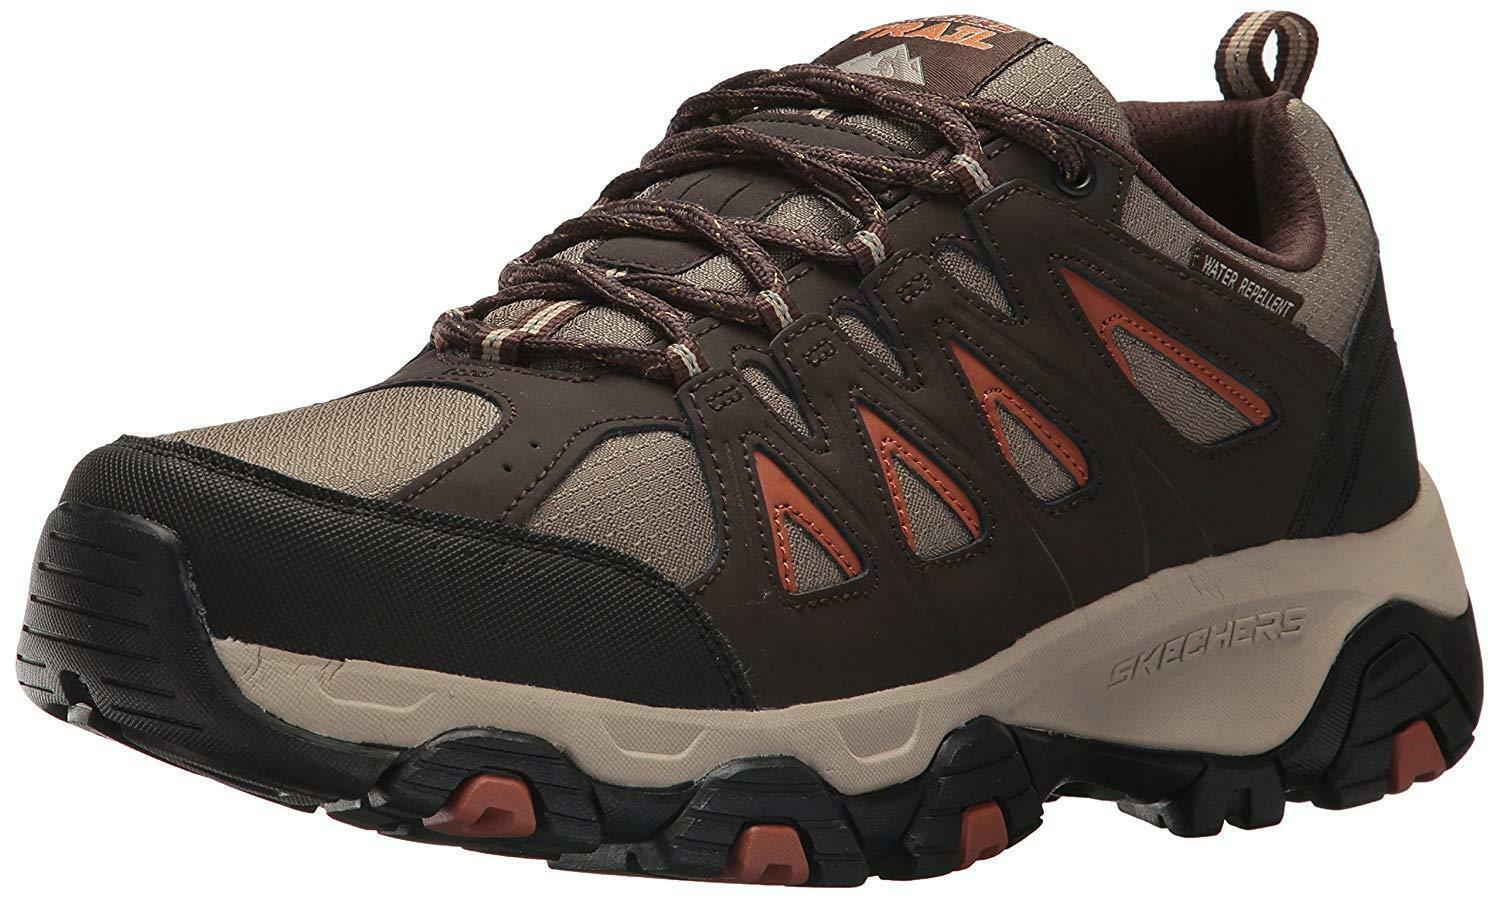 Skechers Men's Terrabite Oxford Trail Walking Hiking Shoe image 2